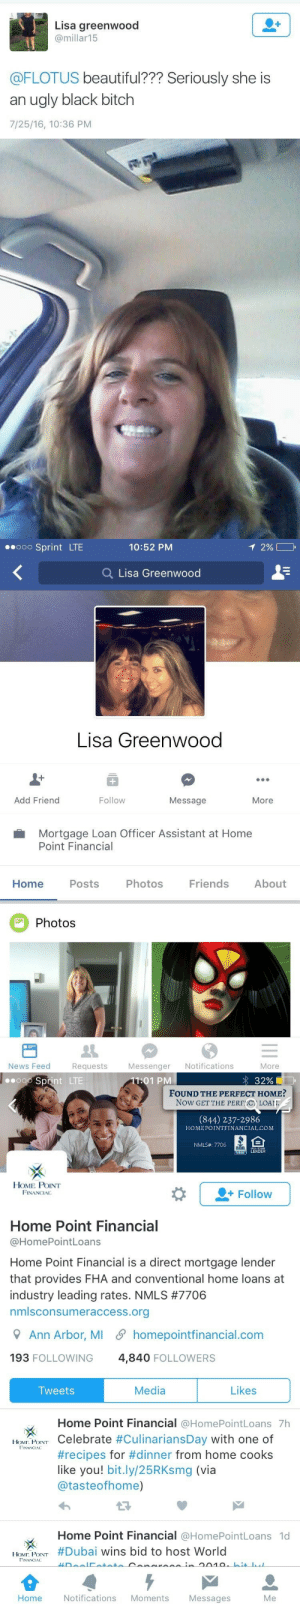 "Beautiful, Bitch, and Friends: Lisa greenwood  @millar15  @FLOTUS beautiful??? Seriously she is  an ugly black bitch  7/25/16, 10:36 PM   Sprint LTE  10:52 PM  Q Lisa Greenwood  Lisa Greenwood  Add Friend  Follow  Message  More  Mortgage Loan Officer Assistant at Home  Point Financial  Home Posts Photos Friends About  Photos  News Feed Requests Messenger Notifications  More   Sprint LTE  11:01 PM  32 %  FOUND THE PERFECT HOME?  Now GET THE PERFC) LOAI  (844) 237-2986  HOMEPOINTFINANCIAL.COM  NMLS# 7706  LENDER  HOME POINT  FINANCIAL  Follow  Home Point Financial  @HomePointLoans  Home Point Financial is a direct mortgage lender  that provides FHA and conventional home loans at  industry leading rates. NMLS #7706  nmlsconsumeraccess.org  Ann Arbor, MI 5 homepointfinancial.com  193 FOLLOWING  4,840 FOLLOWERS  Tweets  Media  Likes  Home Point Financial @HomePointLoans 7h  | IONI POINT Celebrate #CulinariansDay with one of  FINANCIAL  #recipes for #dinner from home cooks  like you! bit.ly/25RKsmg (via  @tasteofhome)  Home Point Financial @HomePointLoans 1d  [ION, POINT #Dubai wins bid to host World  FINANCIAL  Home  Notifications Moments  Messages  Me sodomymcscurvylegs:  la-rinascente:  tapatiopapi:  leplastiquedick:  dysfunctunal:  furbytheminx:  furbytheminx:  sashayshanta28:  dysfunctunal:  @racistsgettingfired @reverseracism  y'all know the drill 😒  See this is the part of institutional racism that some ppl don't fully grasp. Look at her job title….think of all the shitty things she's done to the other ""black bitches"" she's encountered in her work.  She changed her profile to private but that doesn't mean you can't attach her tweet and @ her job 😊  Kenneth Ferranti Title: Branch ManagerOffice Phone: 401-595-5503Toll-free Phone: 866-803-8185Fax: 866-449-9855Email: kferranti@homepointfinancial.com Feel free to call her boss or send him an email  ^^^^ Please reblog with the information above and send a quick email with the screenshots!    #ruinwhitelives2k16  I love a happy ending"